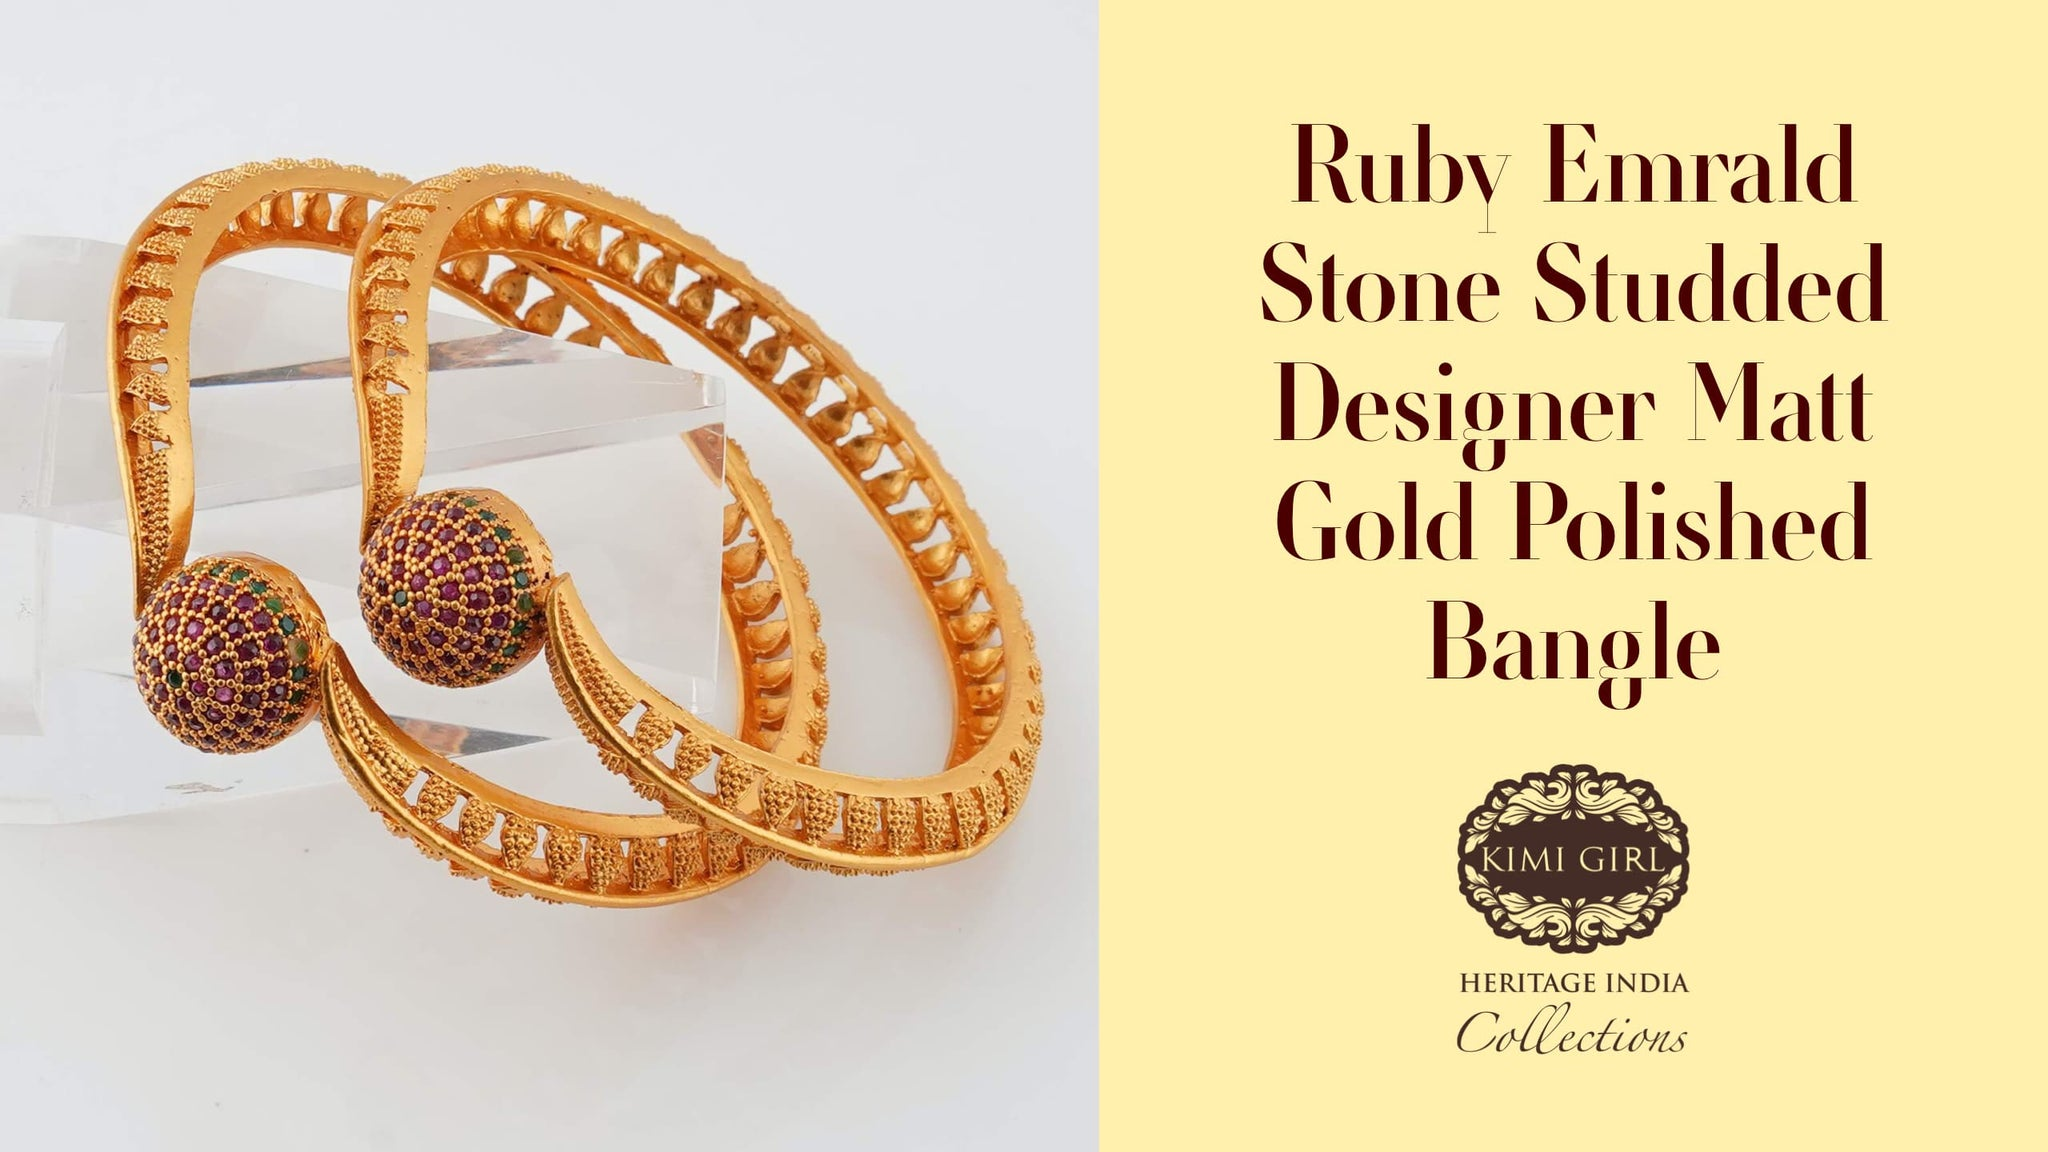 5 Unique Bangle Designs From Kimi Girl To Complete Your Goddess Look by The Nesavu salem, Coimbatore, Erode7